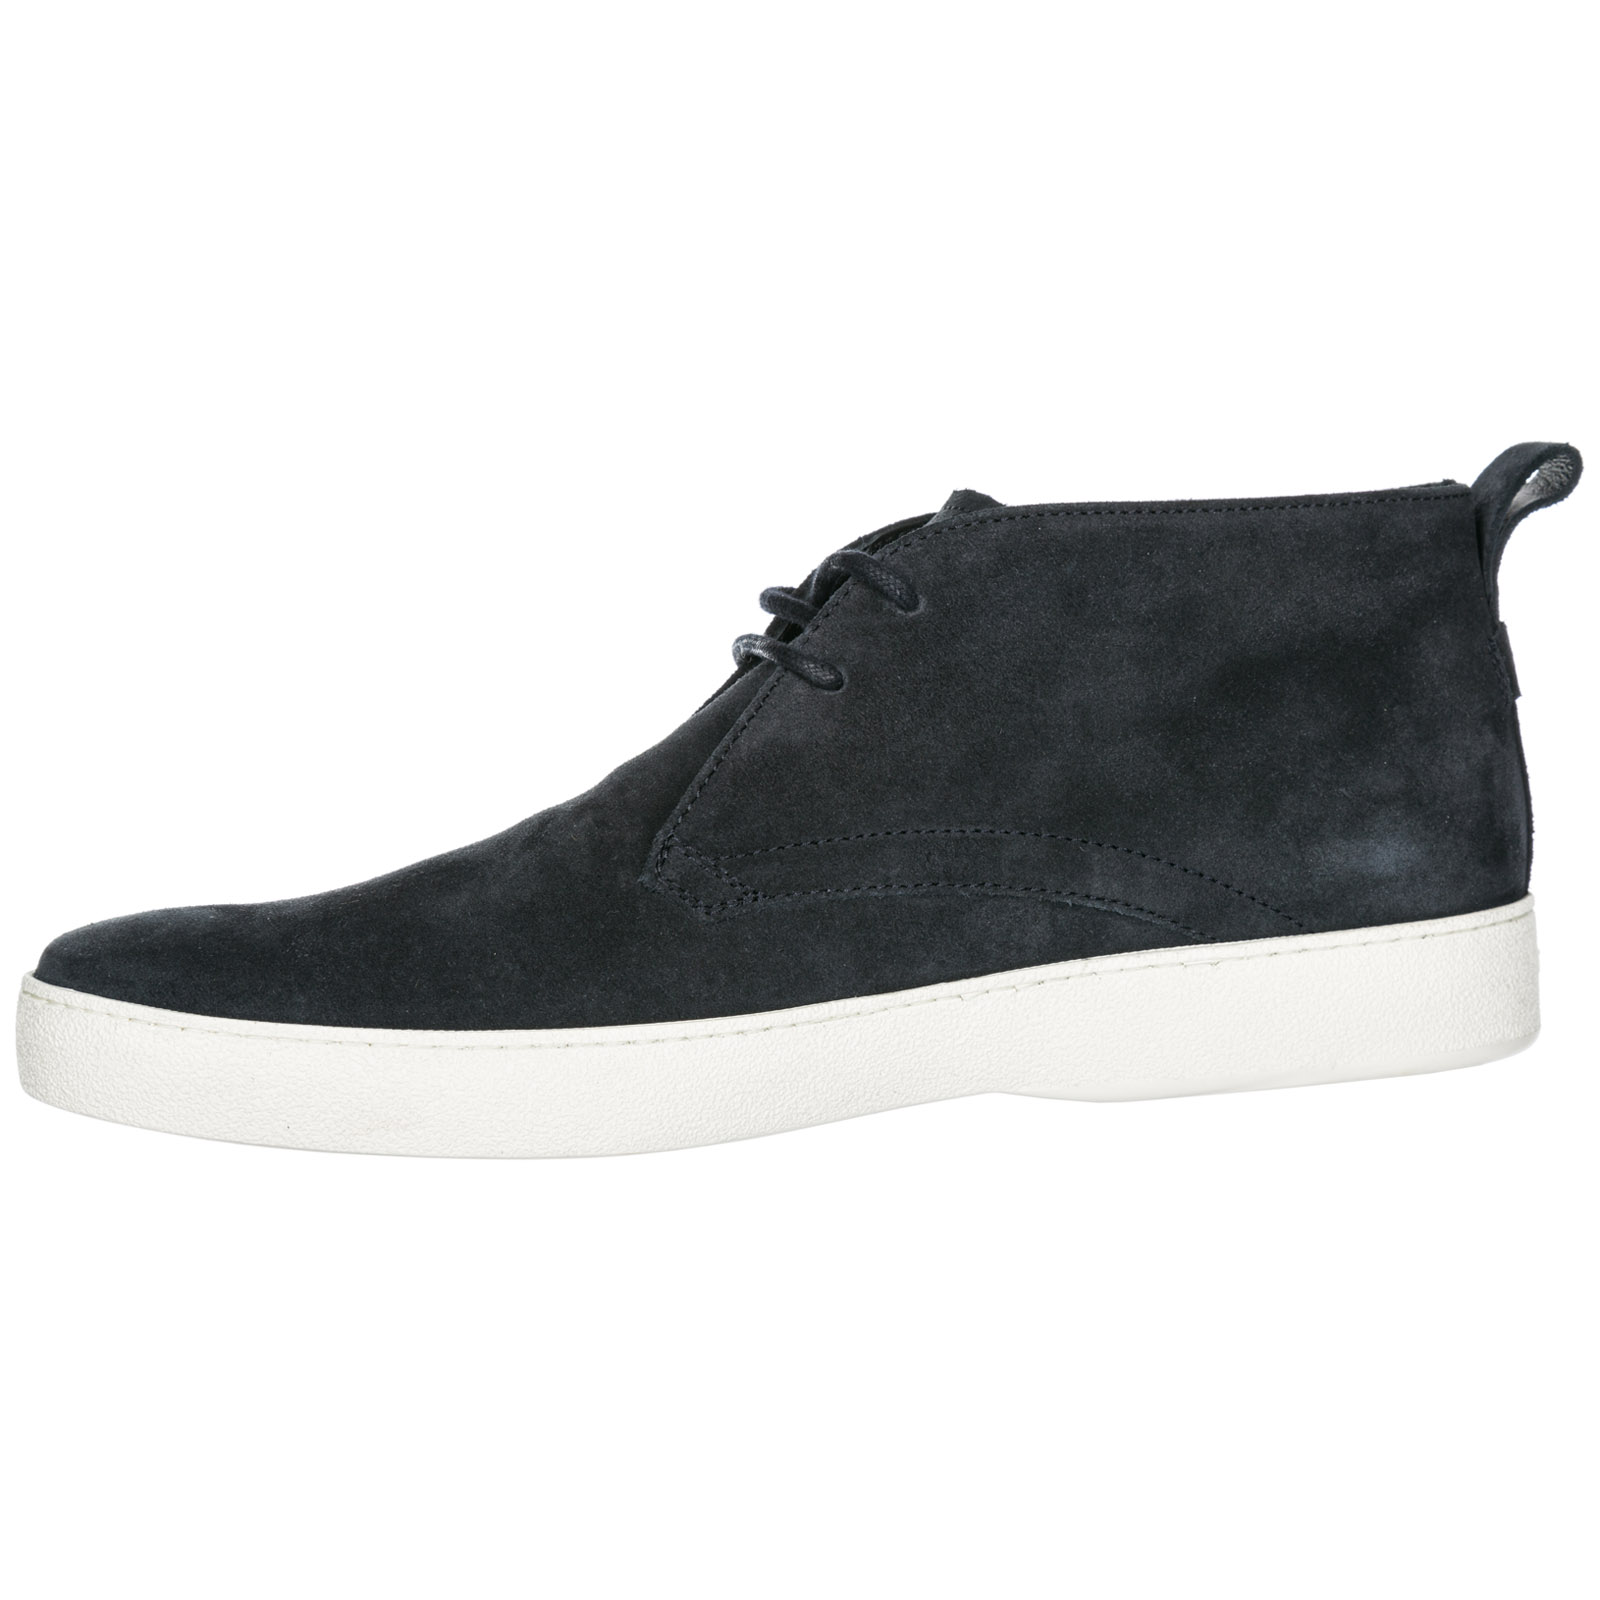 Men's suede desert boots lace up ankle boots gomma casual